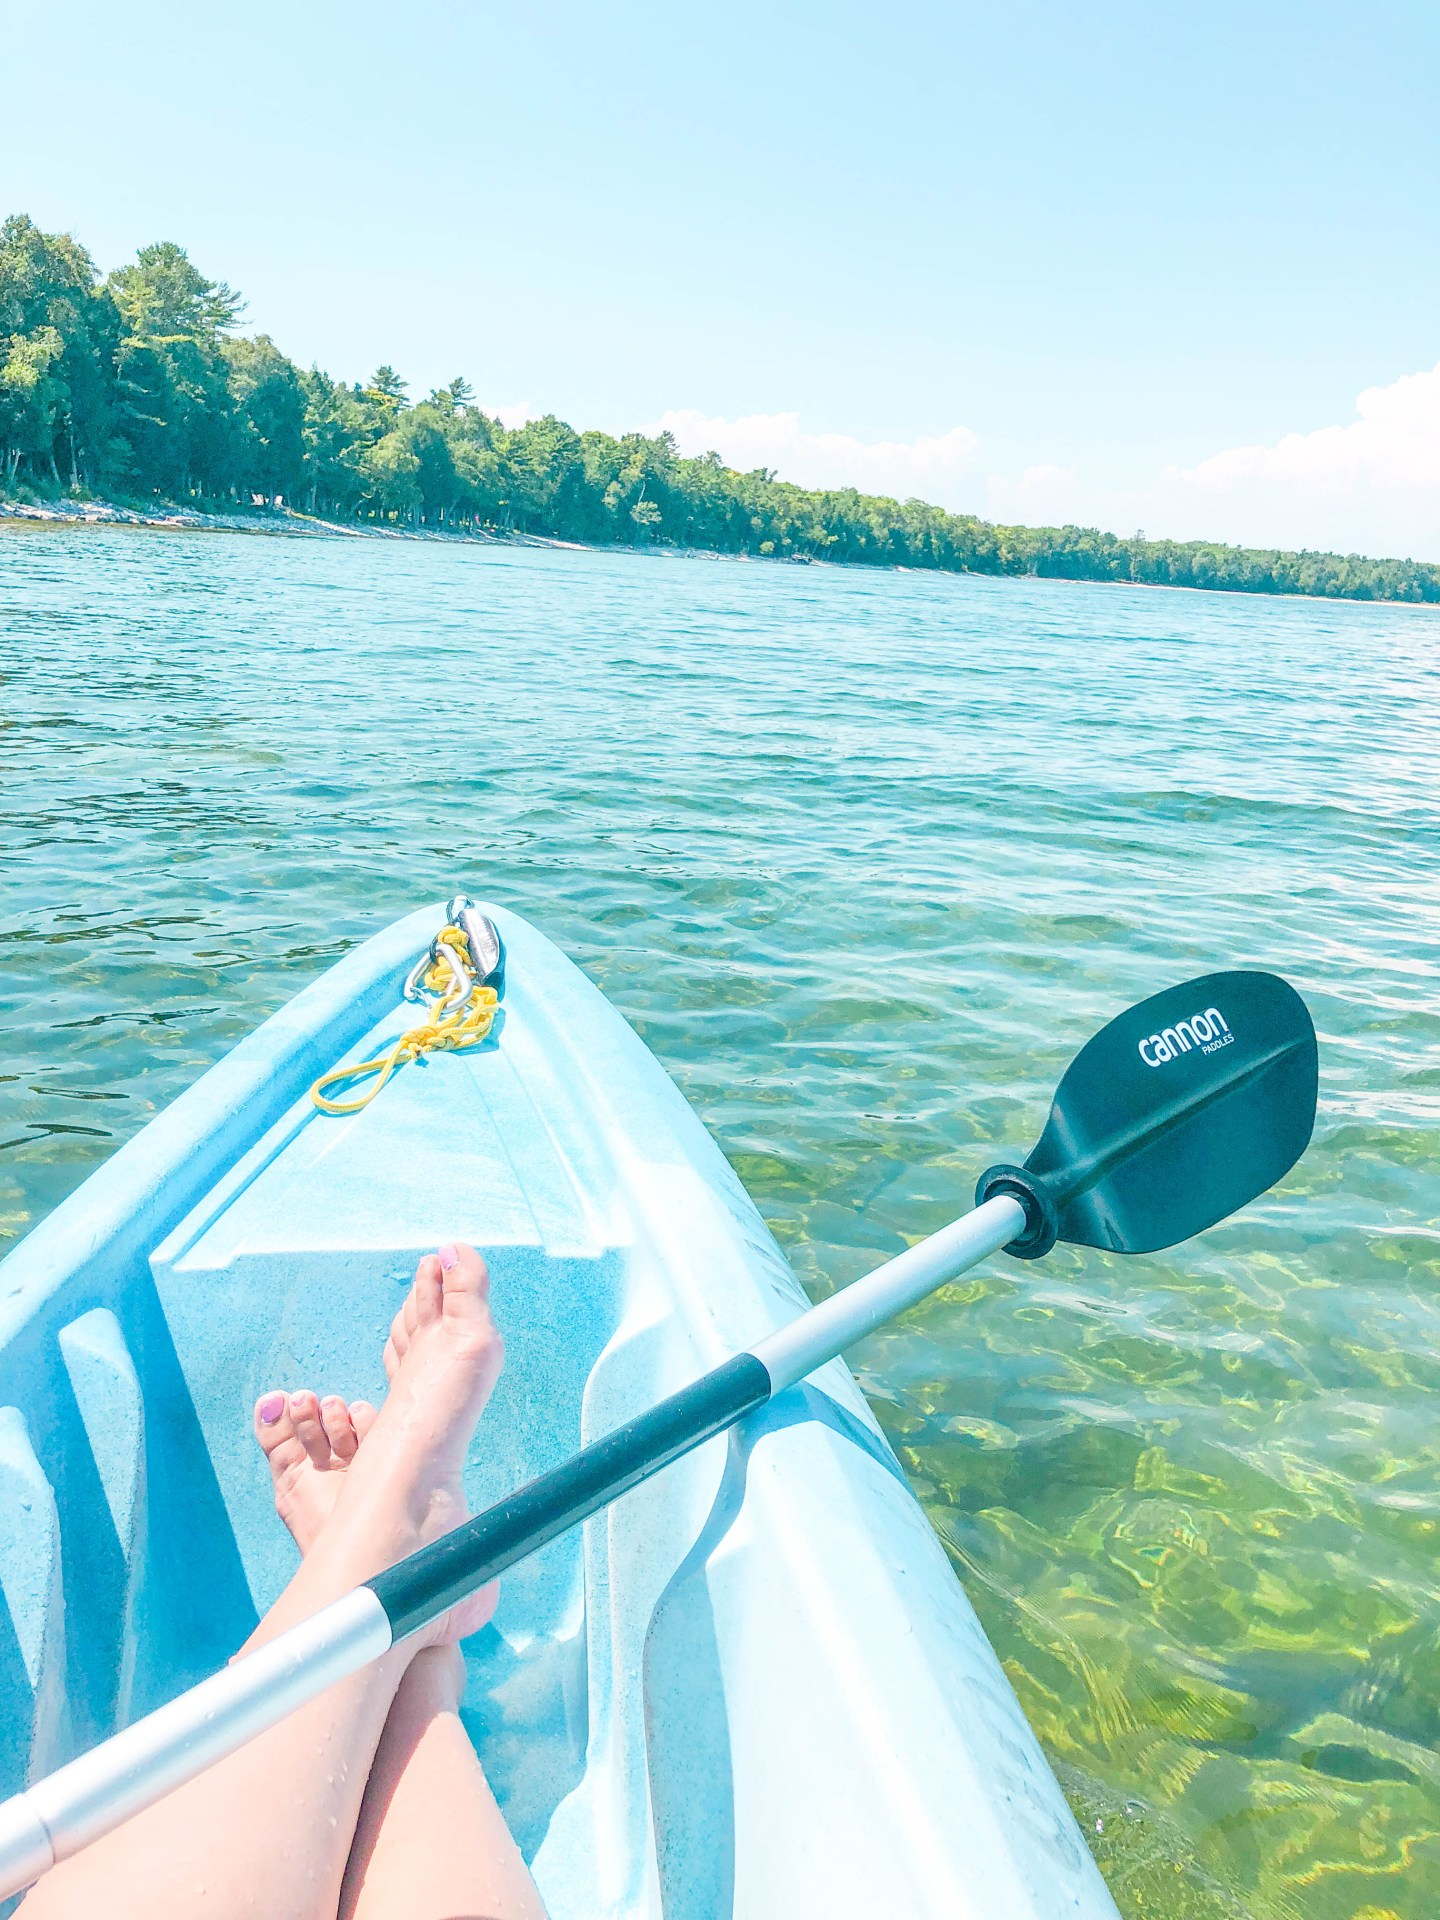 Kayaking in Door County, Tips for First-Time Kayakers + Video!